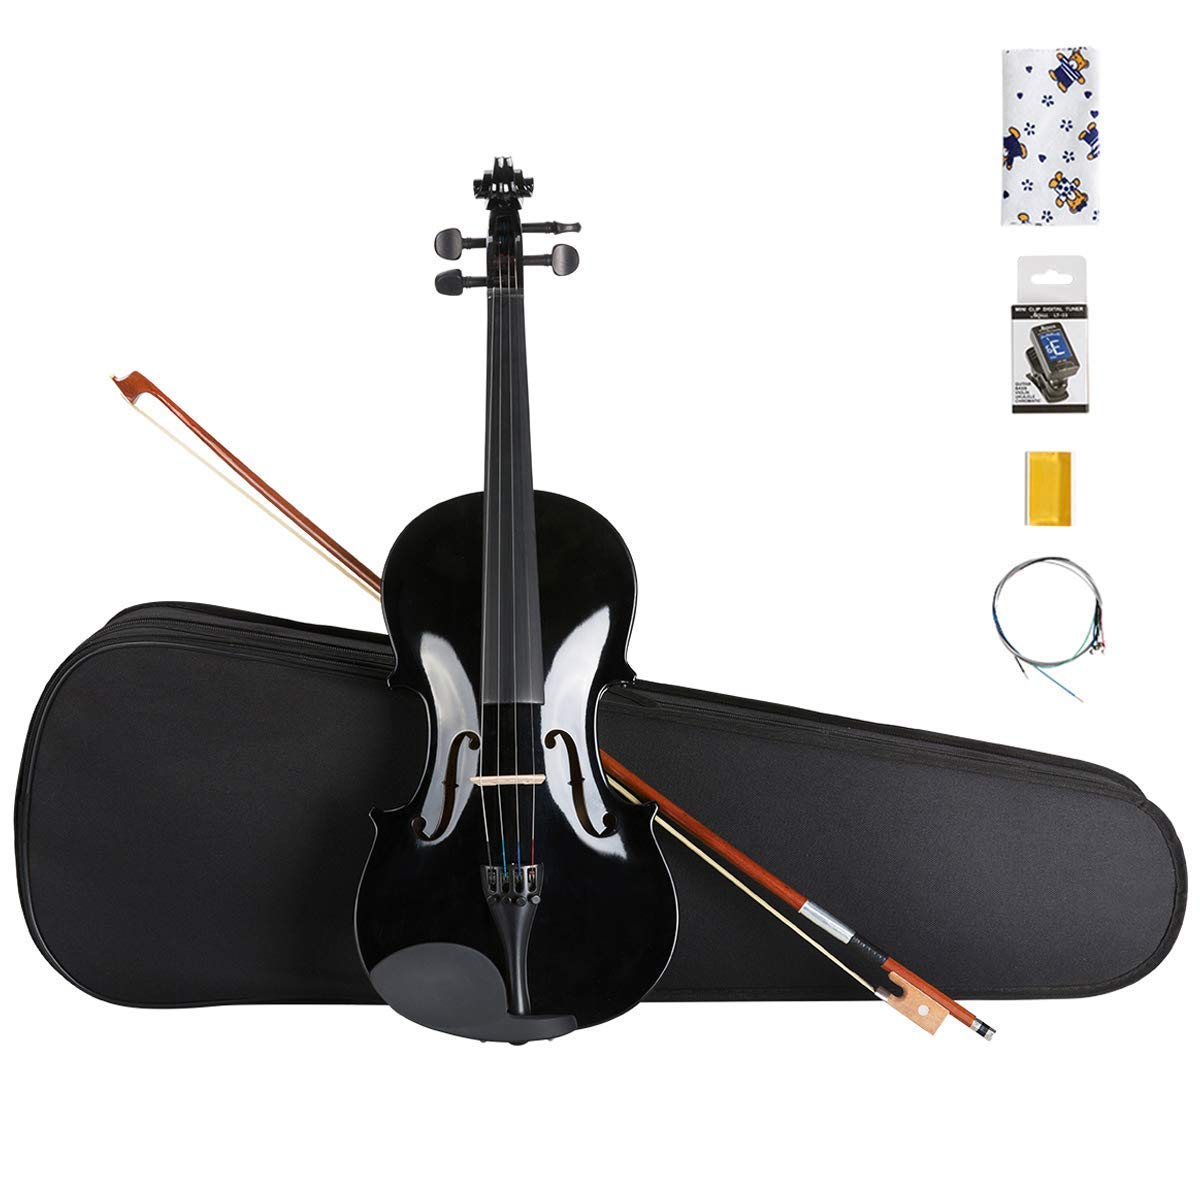 ARTALL 4/4 Handmade Student Acoustic Violin Beginner Pack with Bow, Hard Case, Chin Rest, Tuner, Spare Strings, Rosin and Bridge, Glossy Black by ARTALL